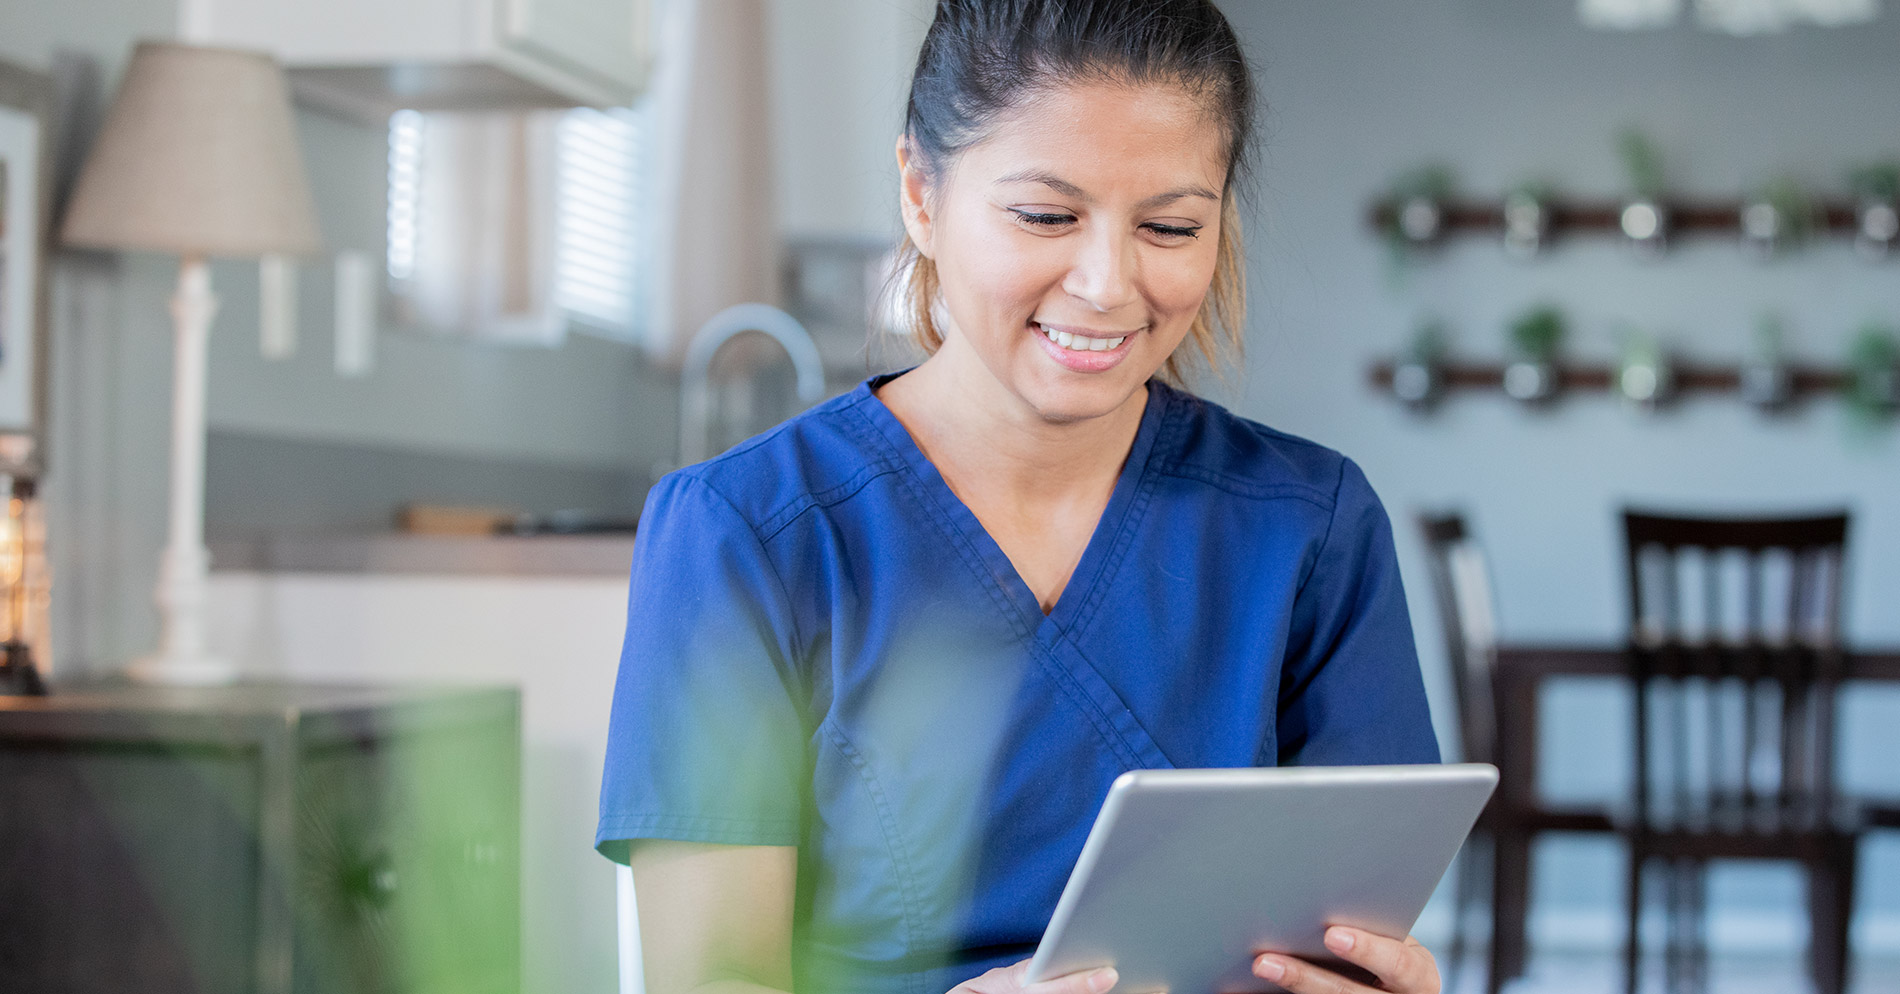 Doctor office telehealth services on ipad